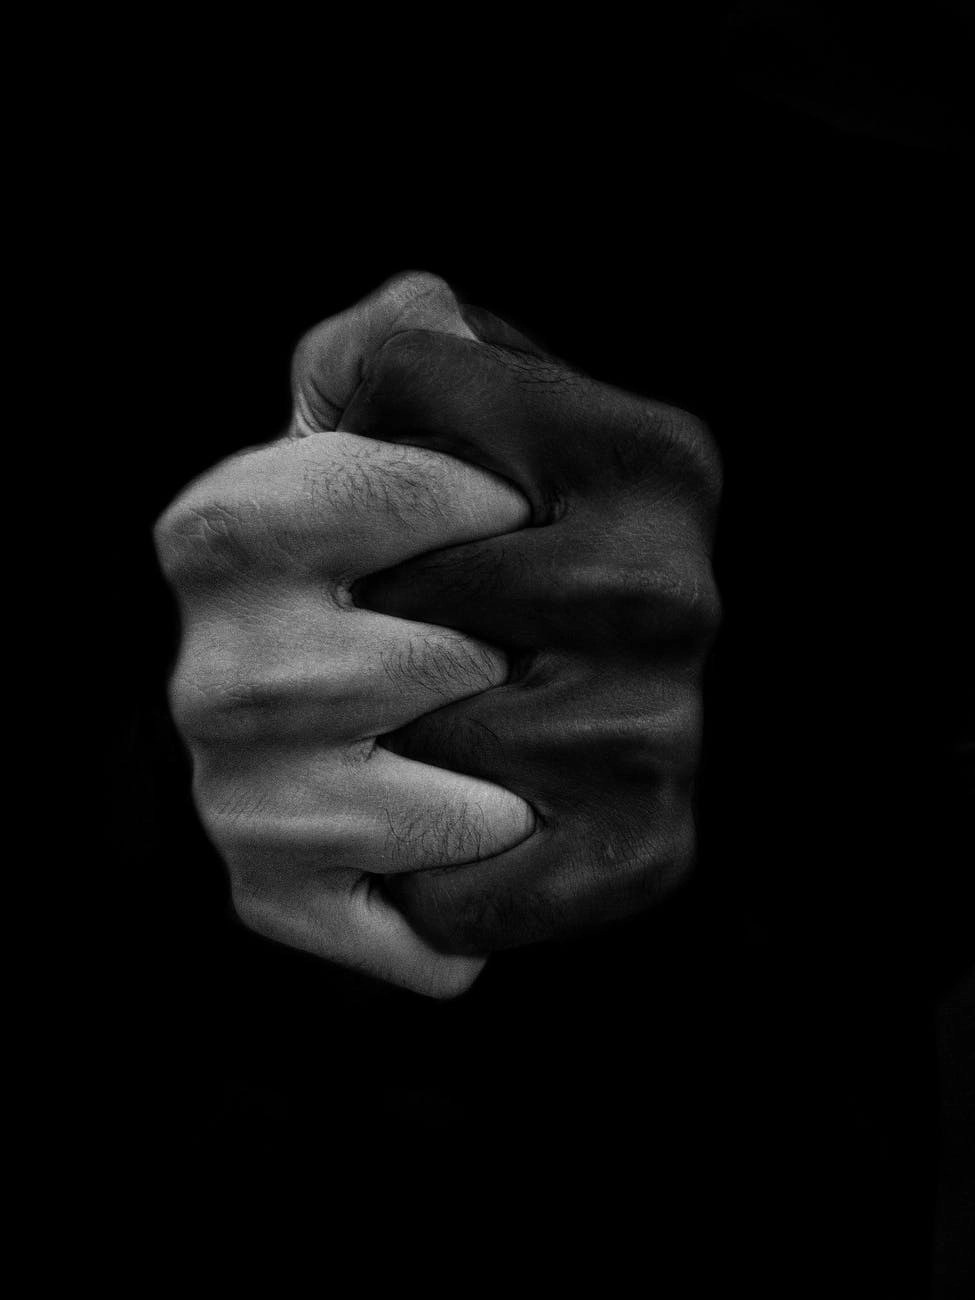 clasped hands of multiethnic people